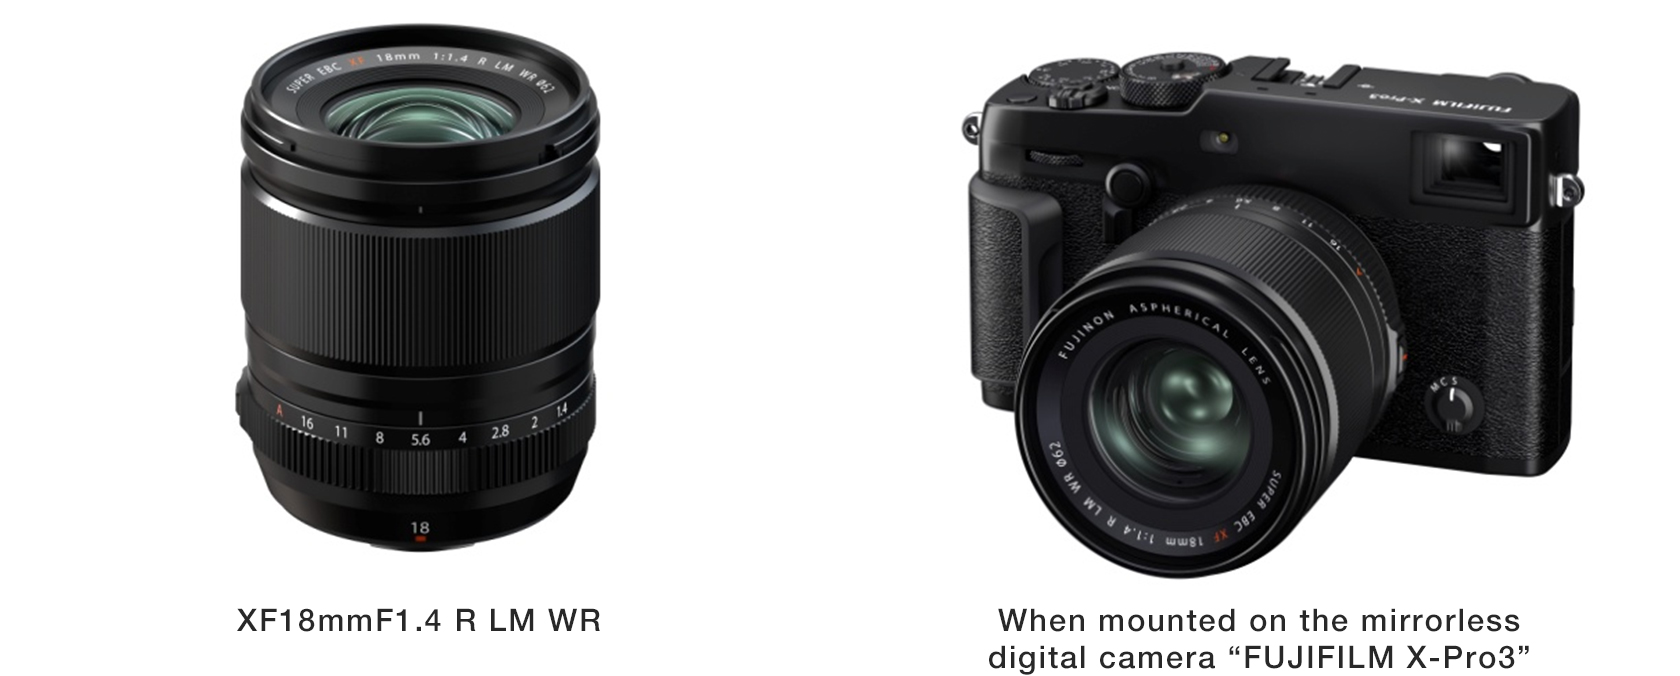 """[Image]XF18mmF1.4 R LM WR / When mounted on the mirrorless digital camera """"FUJIFILM X-Pro3"""""""